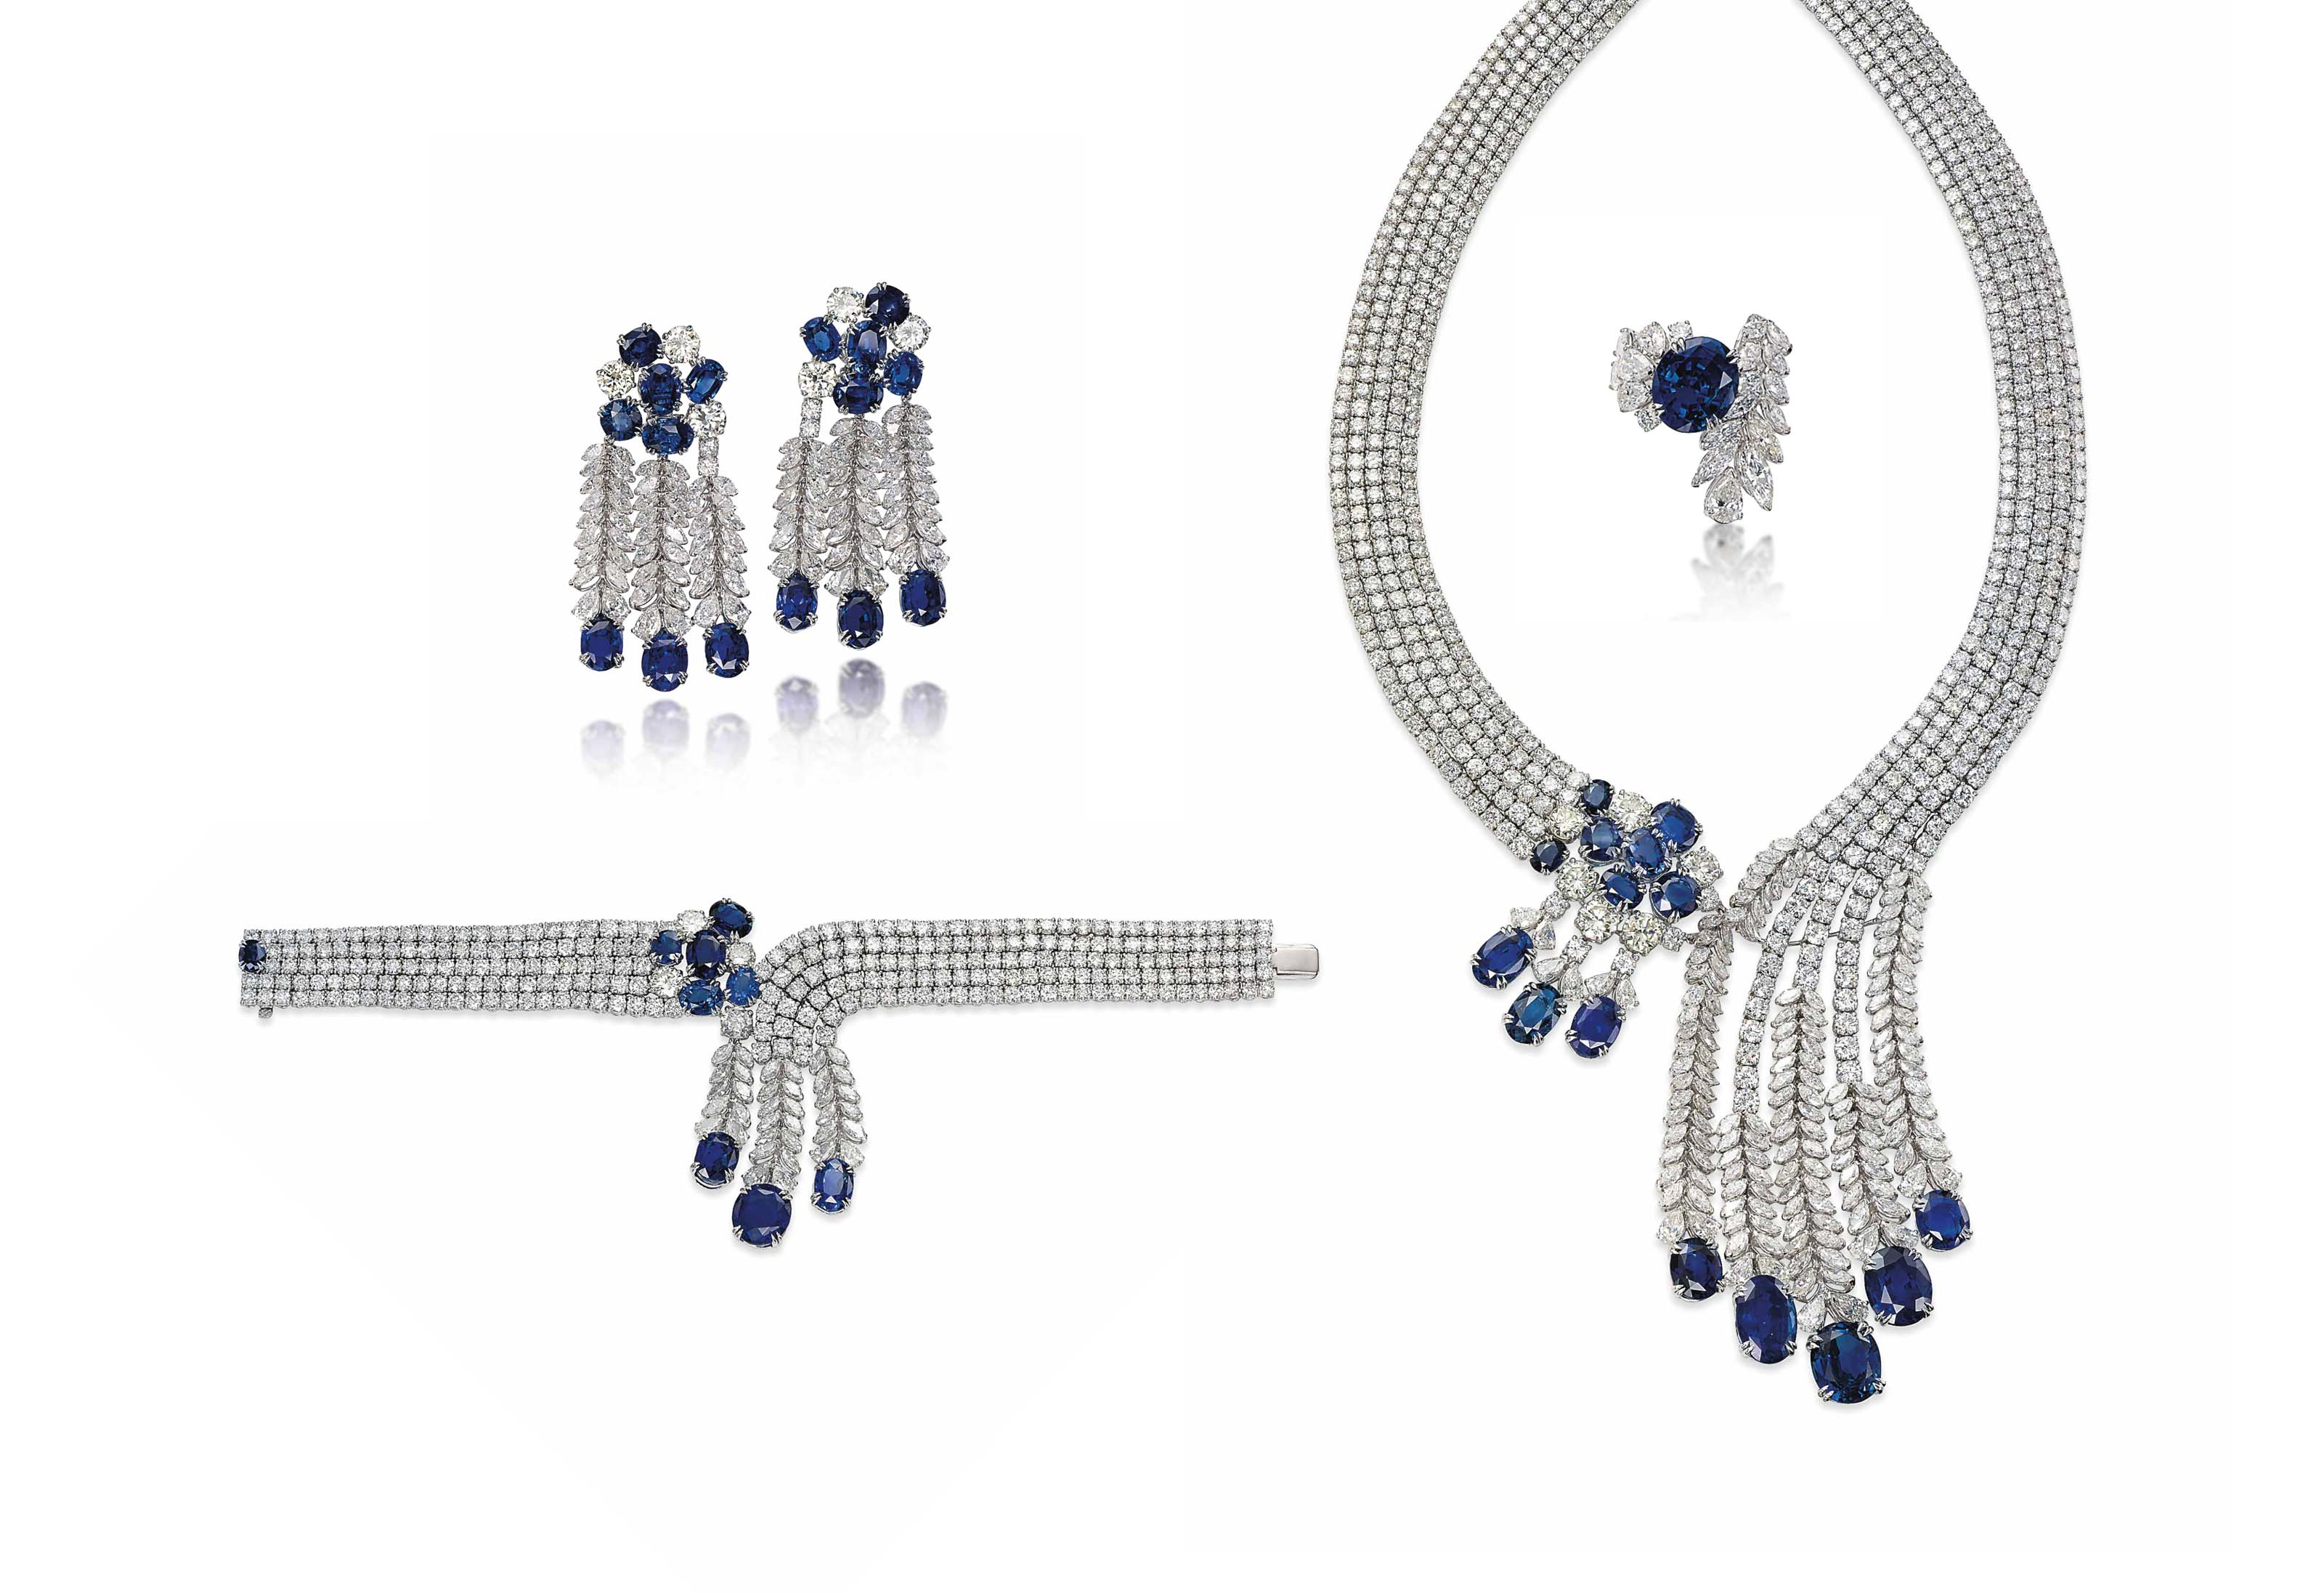 A SUITE OF SAPPHIRE AND DIAMOND JEWELLERY, BY JAHAN